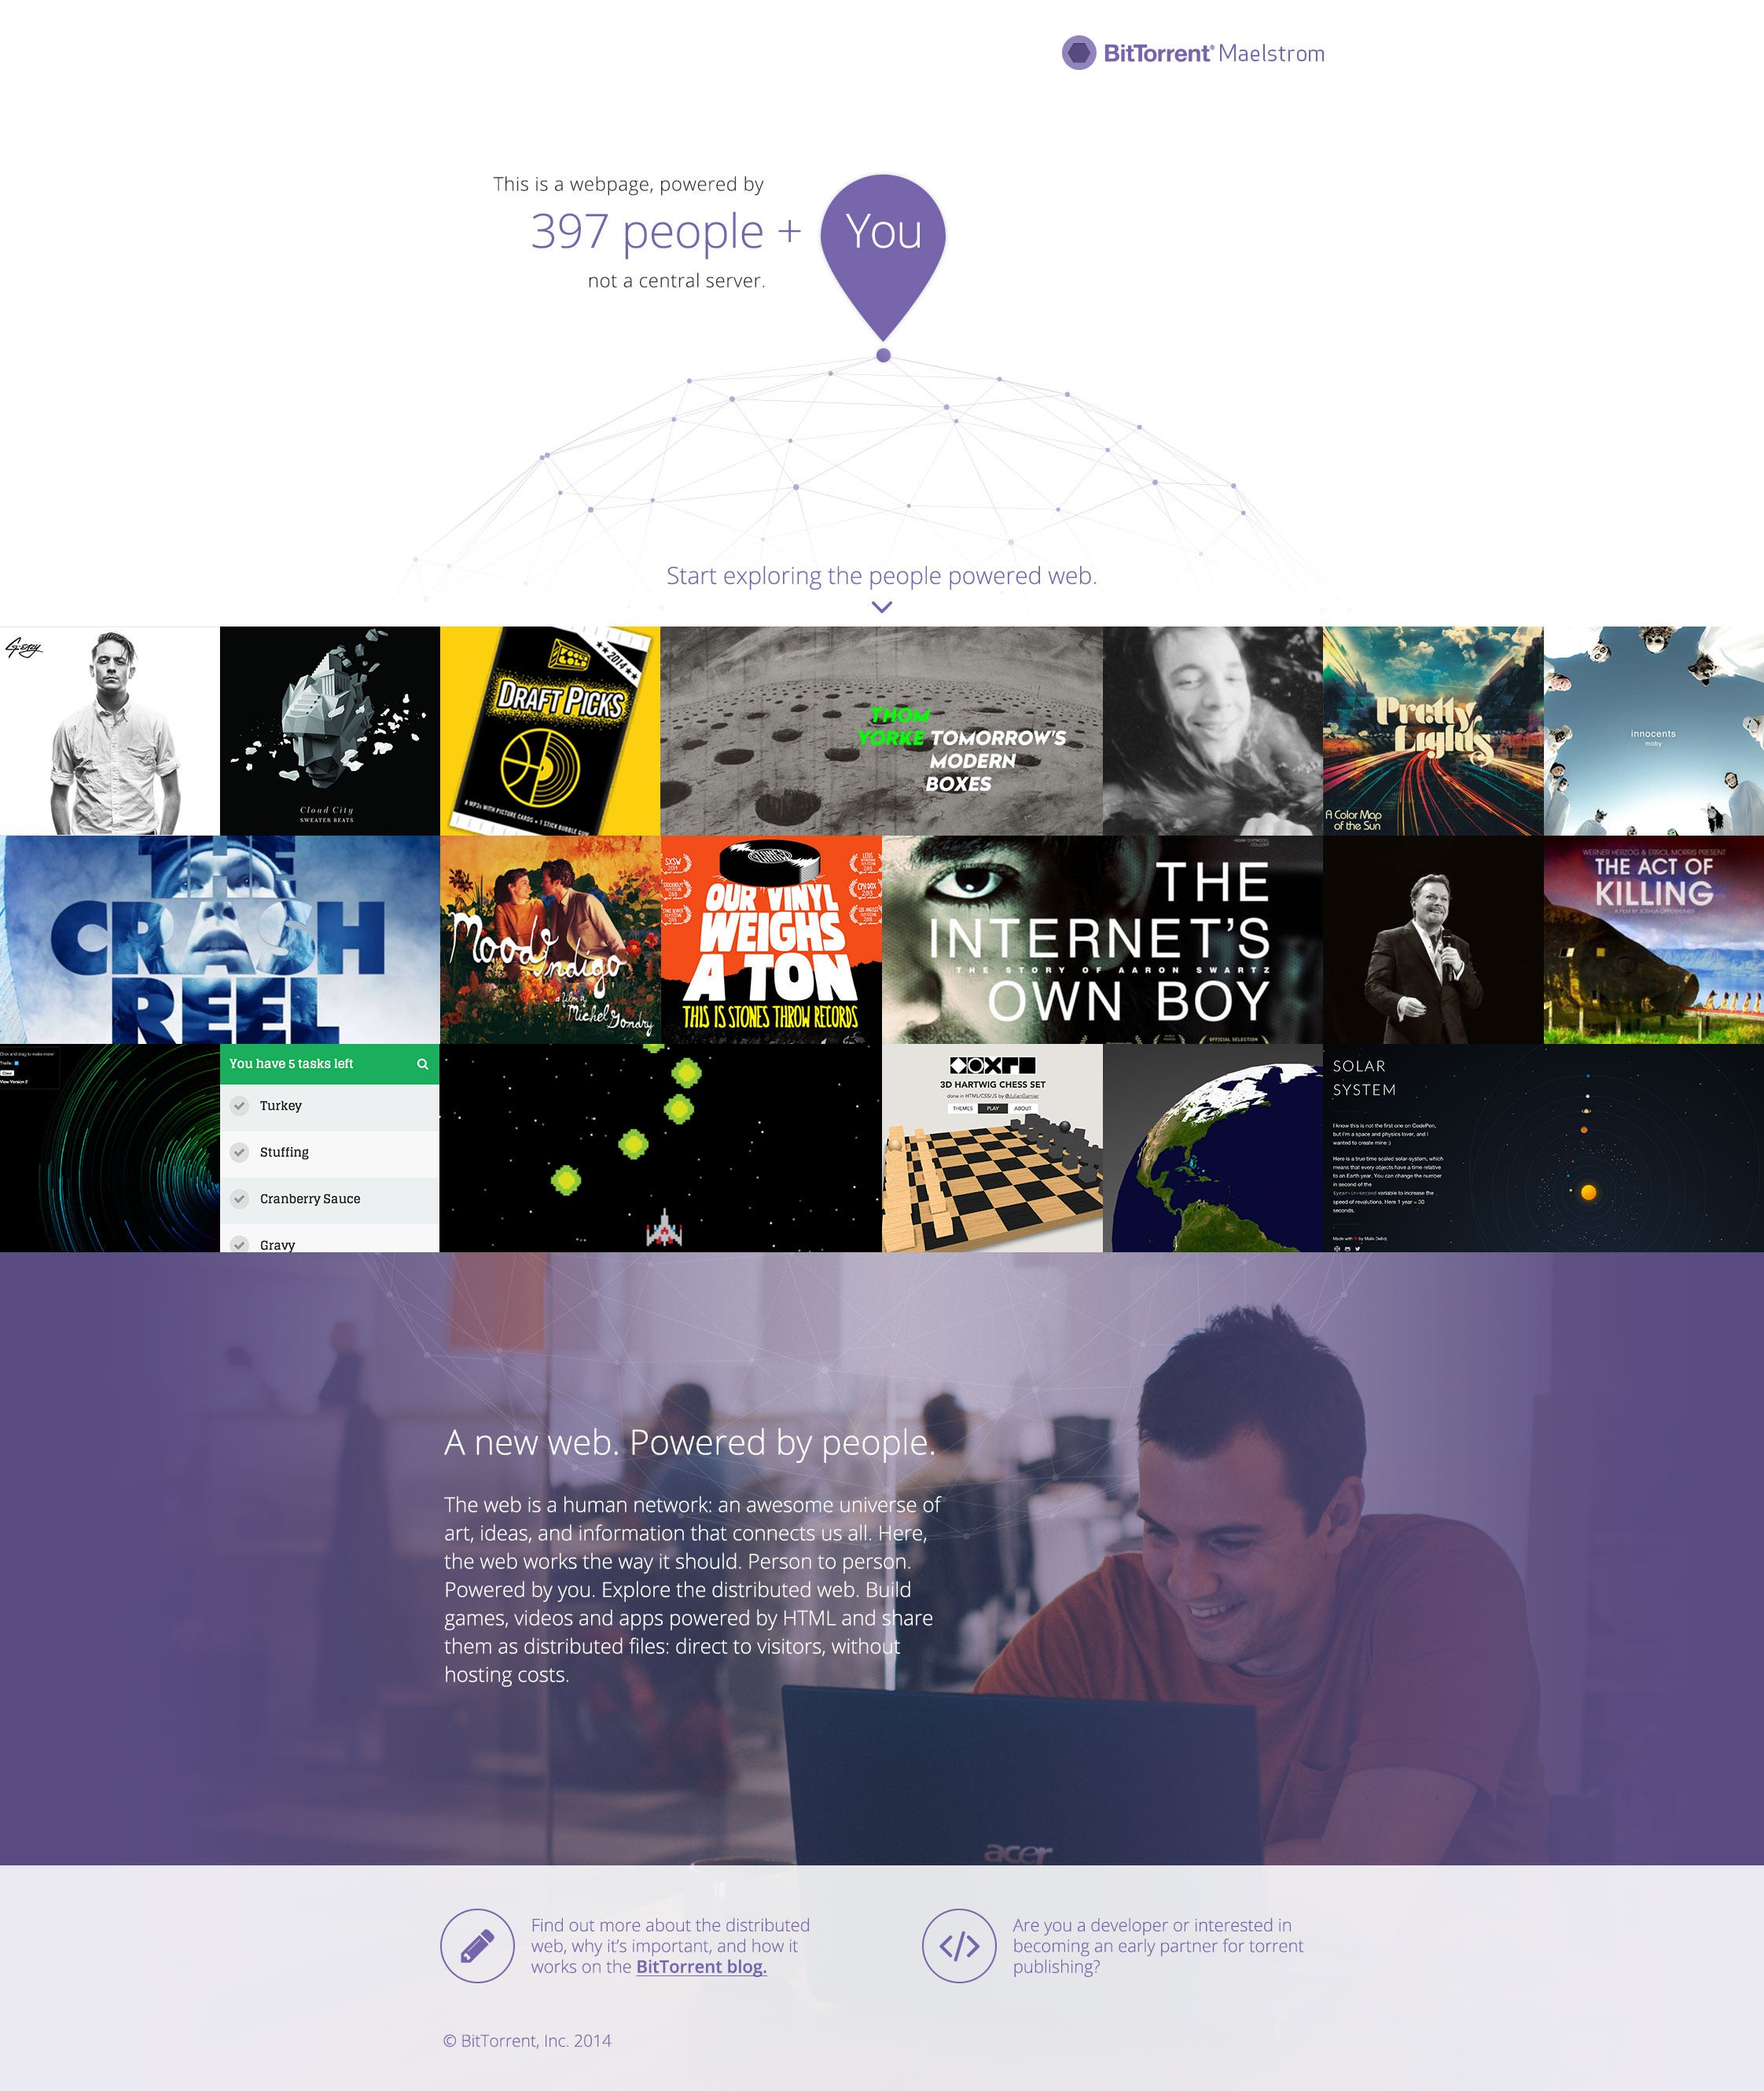 With Project Maelstrom, BitTorrent Wants to Create a P2P Browser